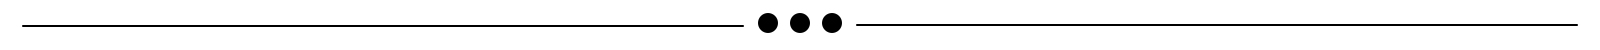 divider bar dots updated.jpg